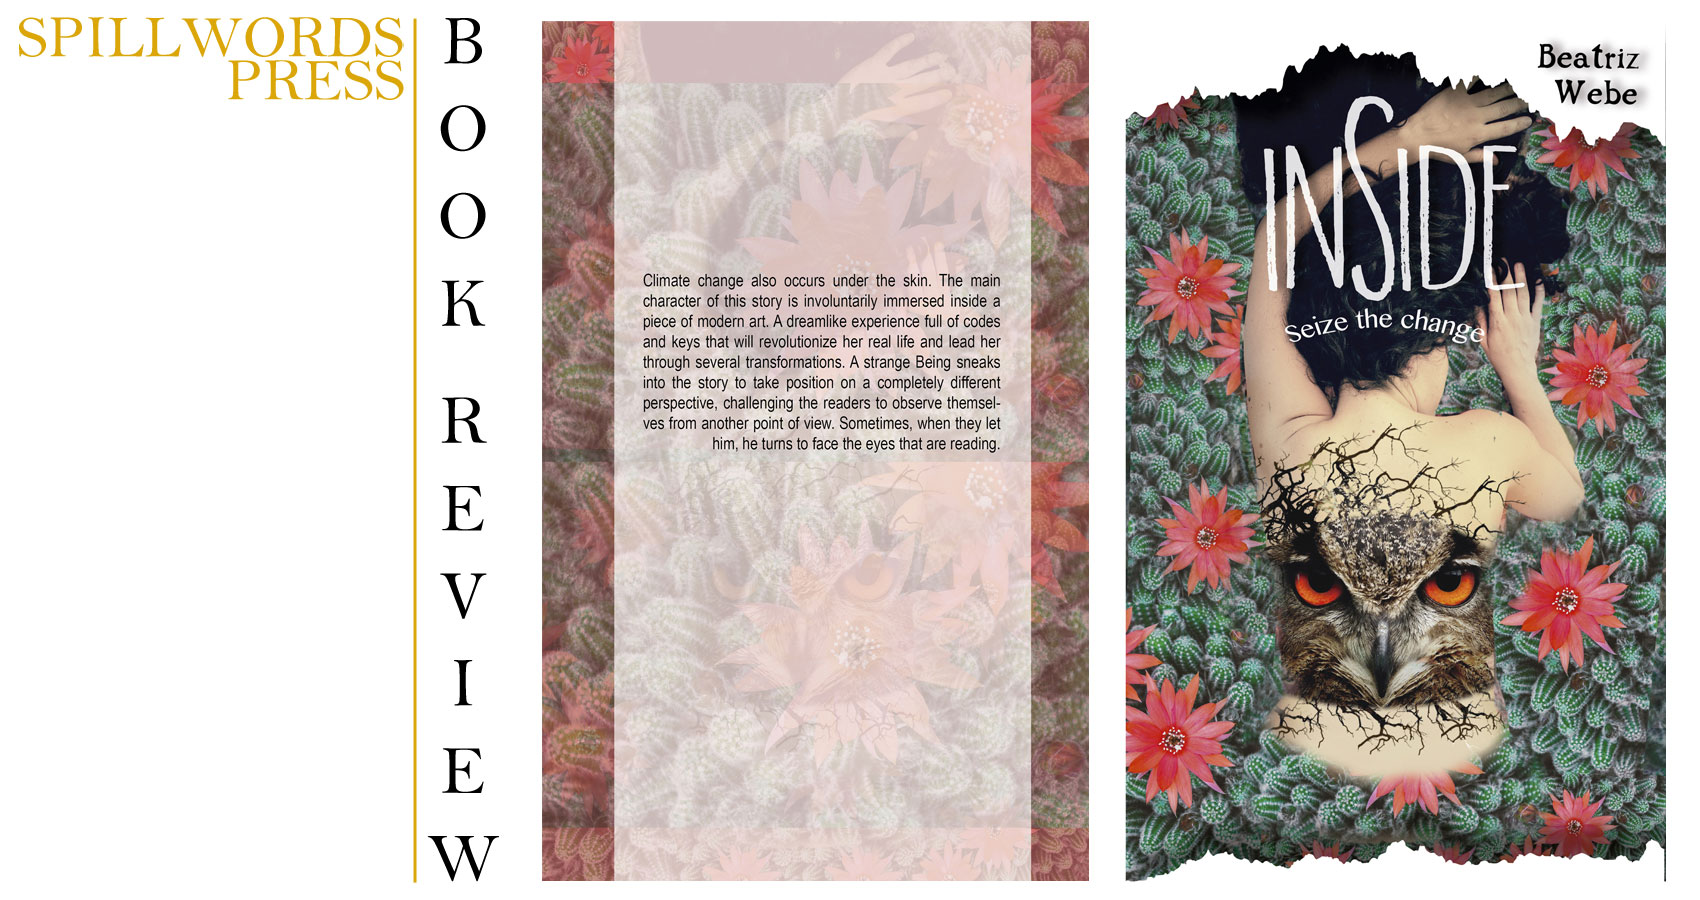 Book Review of a novel by Beatriz Webe 'INSIDE' at Spillwords.com